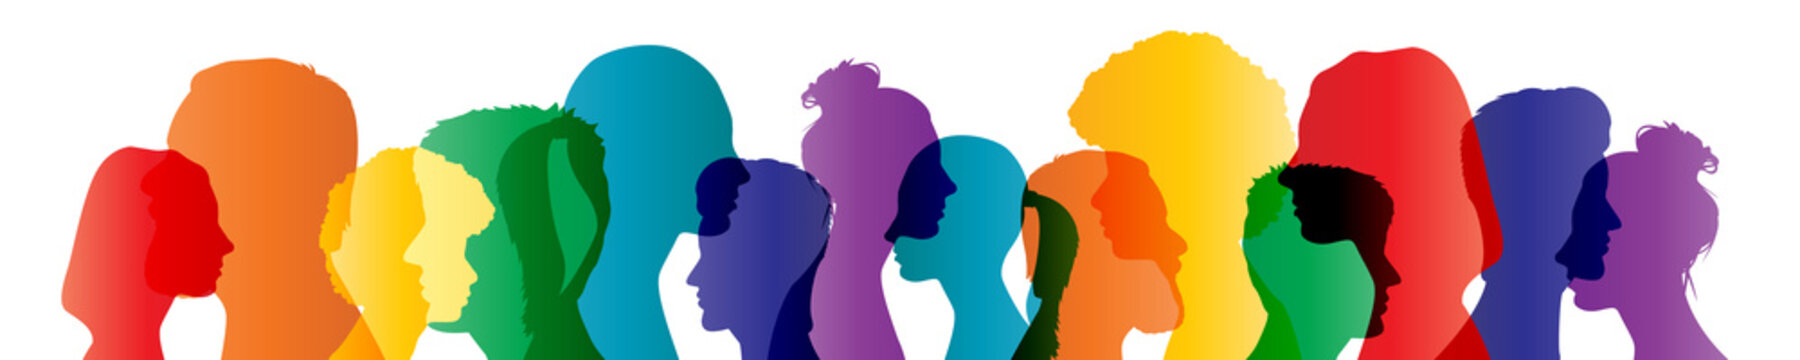 Colorful heads panorama banner community team